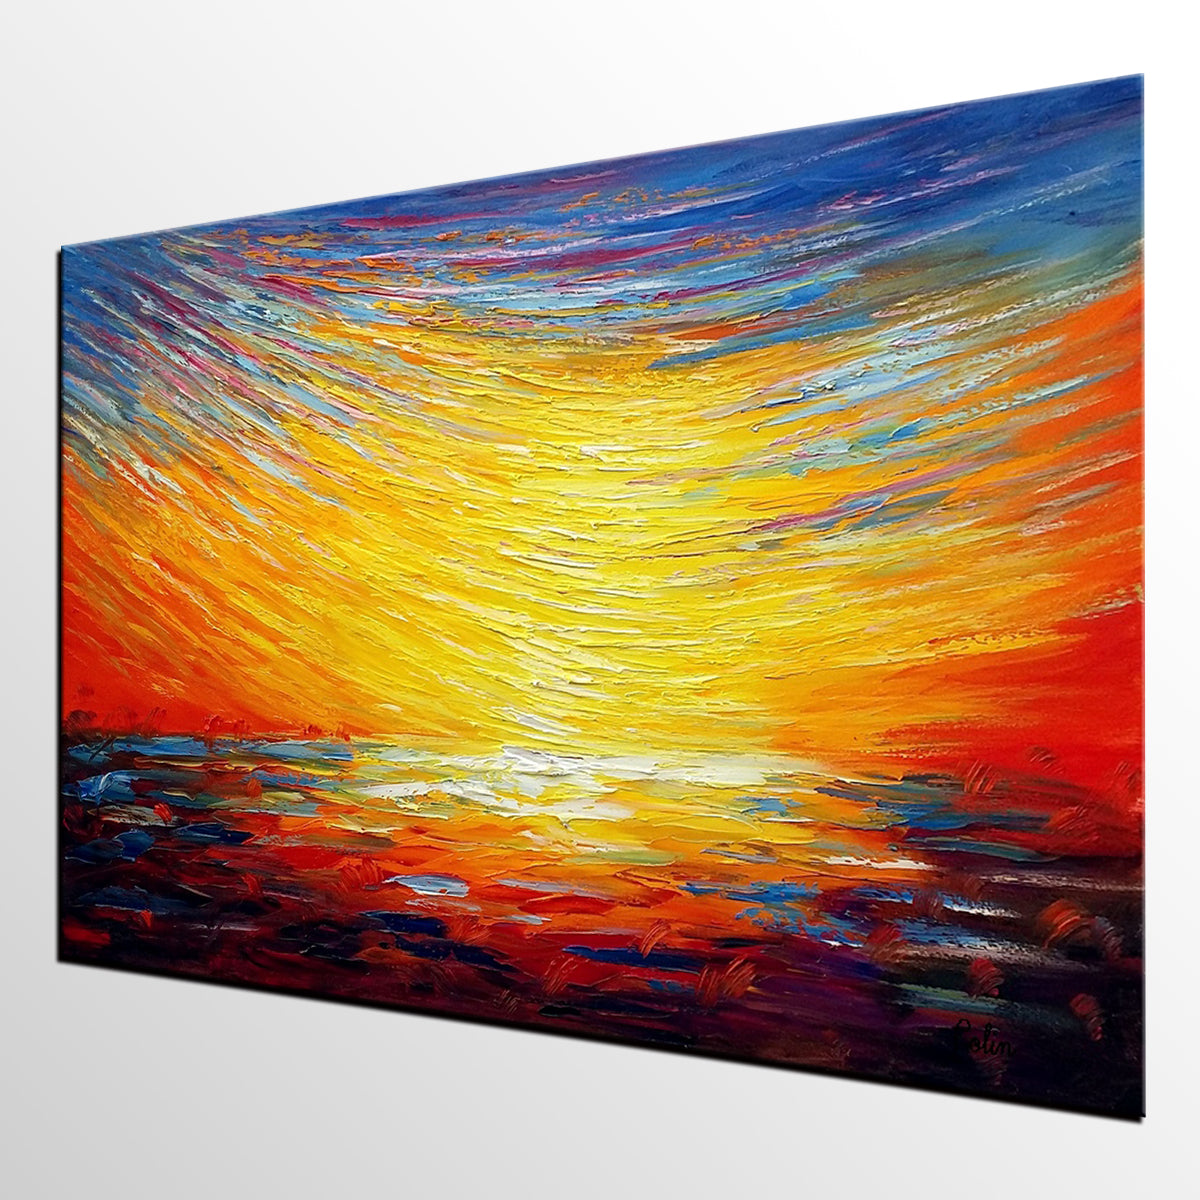 Oil Painting for Sale, Original Abstract Painting, Wall Art, Canvas Painting